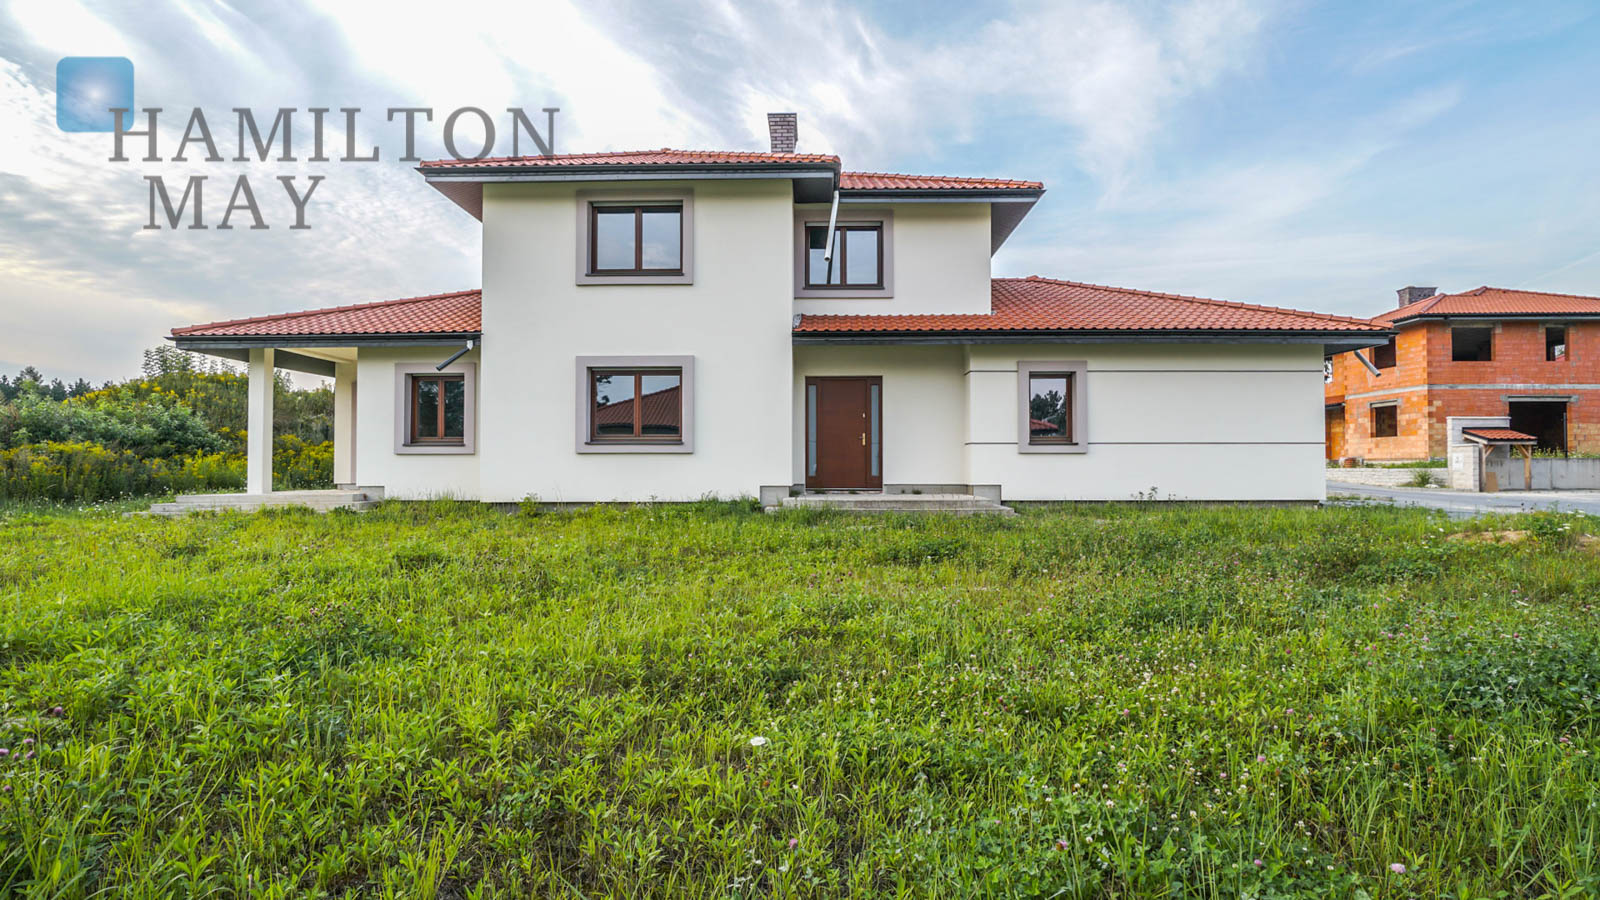 Beautiful, high standard family house situated in a discreet settlement Type B Warsaw for sale